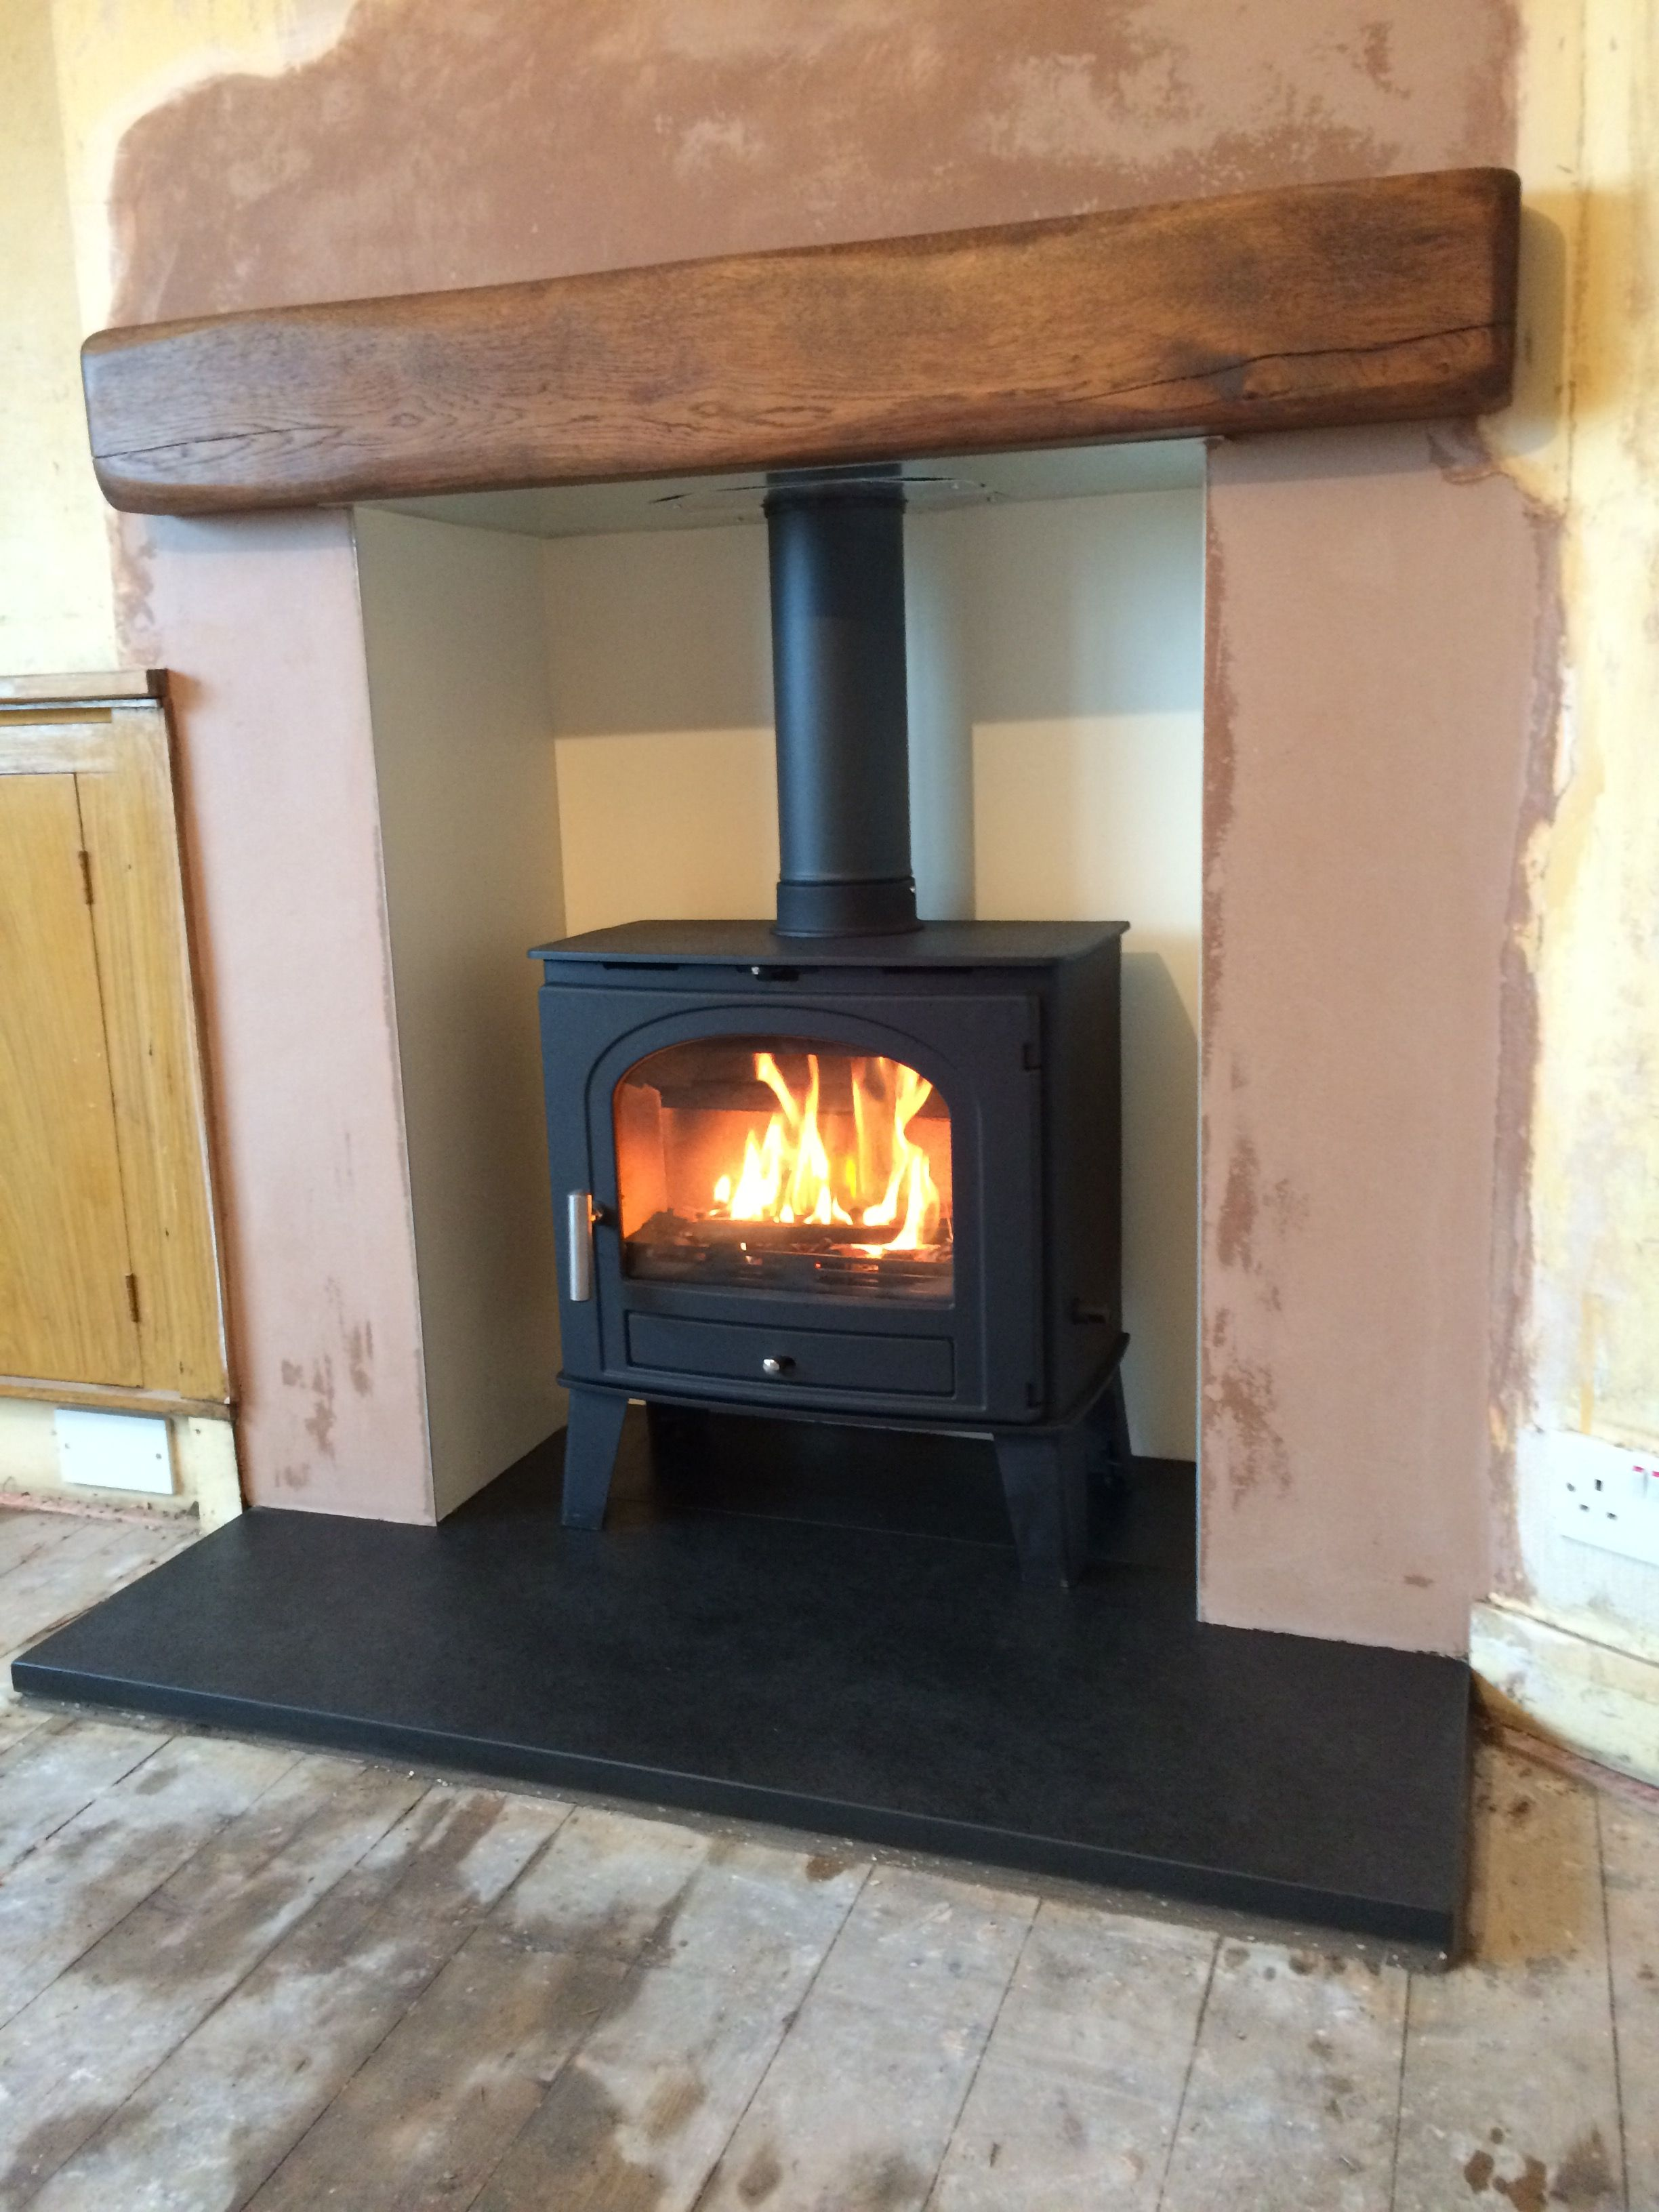 pin by david obrien on david obrien stove and fireplaces pinterest